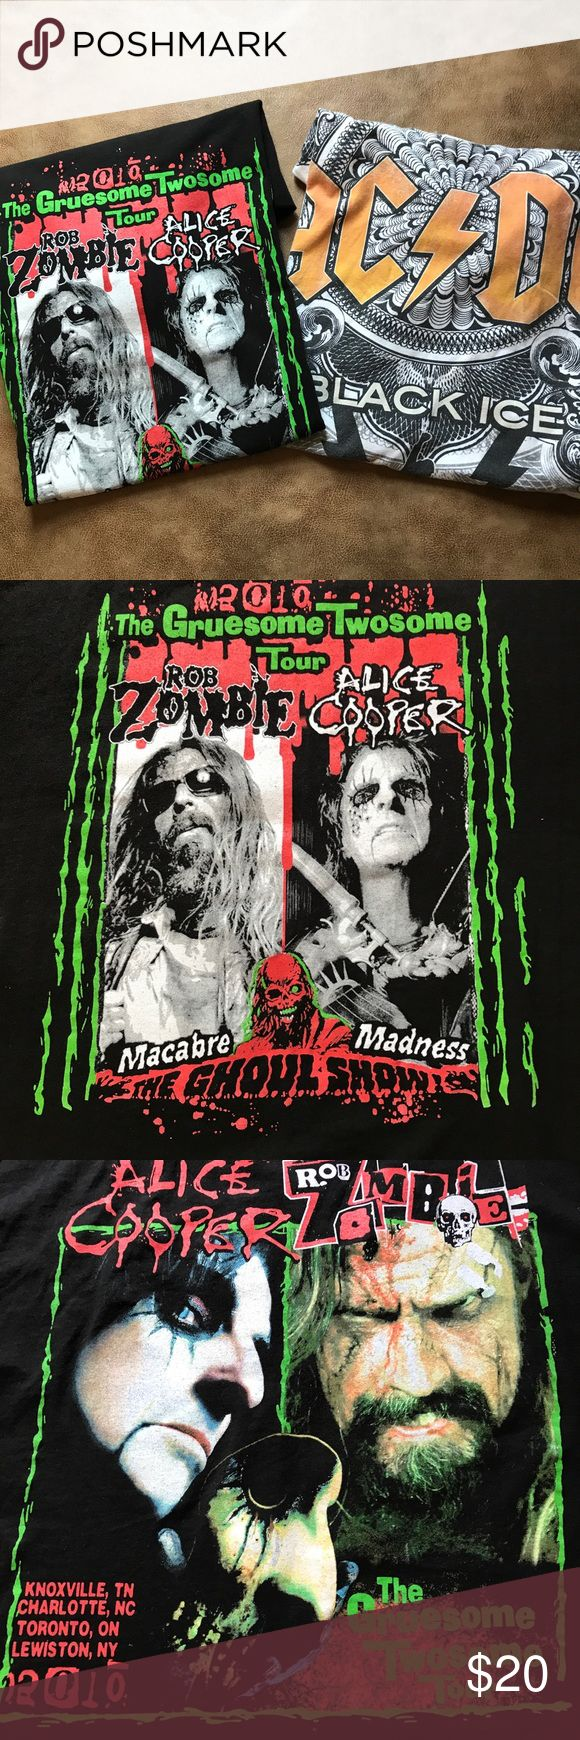 AC/DC, Alice Cooper, Rob Zombie Tshirt bundle Bundle of two T-shirts:  •The Gruesome Twosome tour 2010 with Alice Cooper and Rob Zombie in size XL and AC/DC Black Ice in size XXL. The AC/DC shirt has stains. Please see pictures for details. Thanks for visiting my closet! various Shirts Tees - Short Sleeve